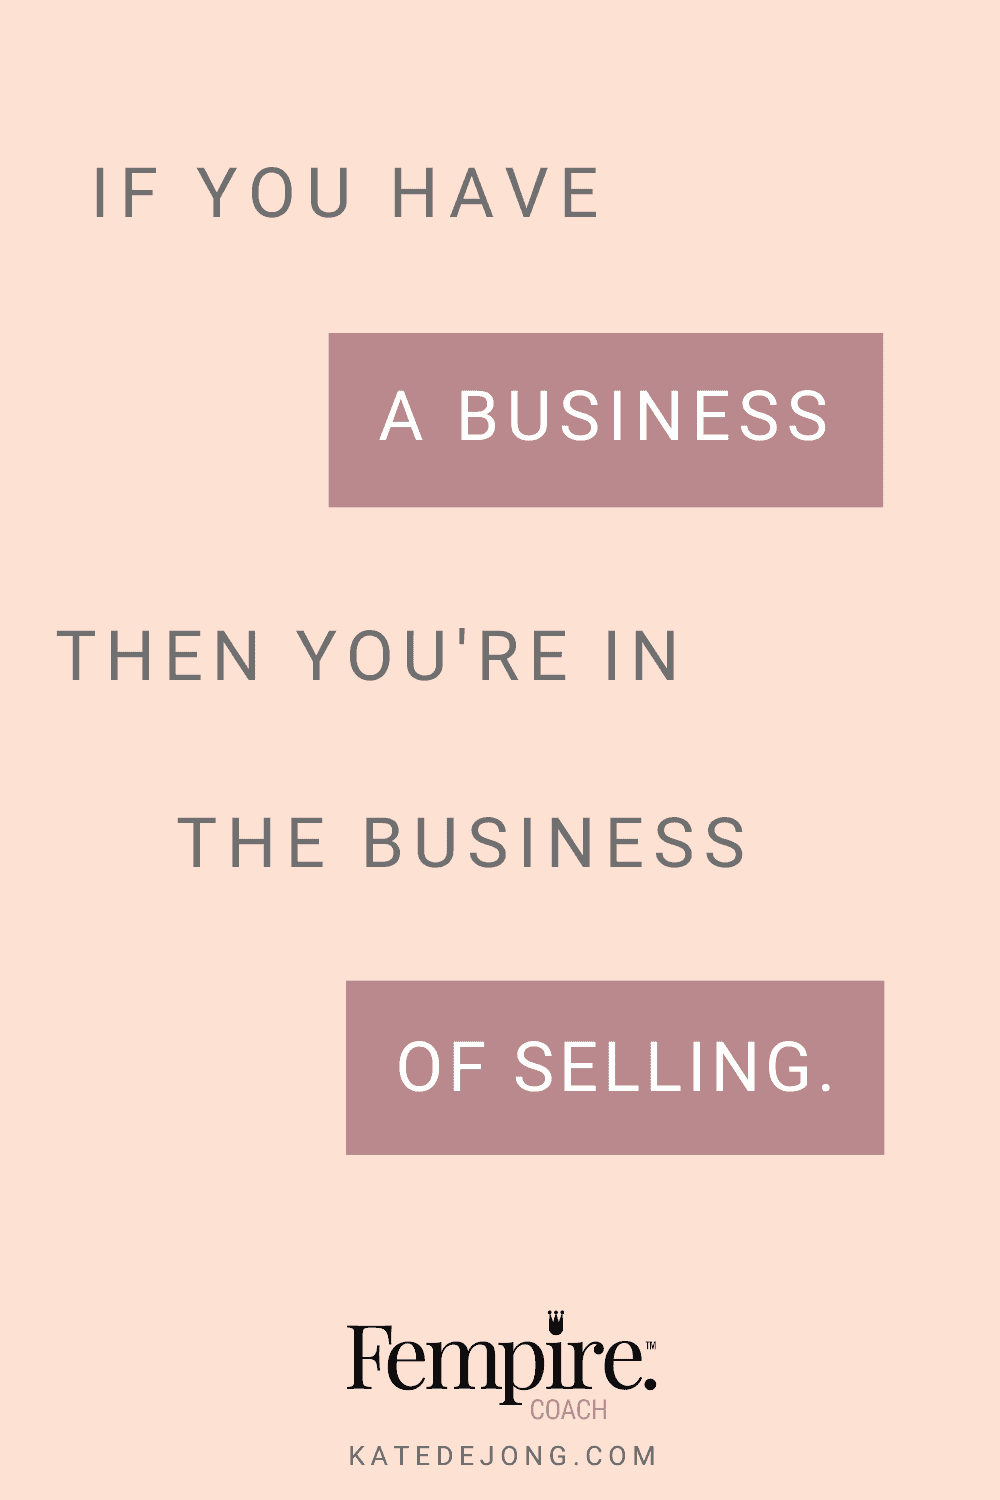 Your ability to sell has a massive impact on your bottom line. It's imperative as a business owner that you master the art of selling, authentically and easily. Discover four other big tips to generate more revenue and freedom in your business! #fempire #smallbusiness #businesscoach #businesscoachforwomen #entrepreneur #businessgrowth #growthstrategies #selling